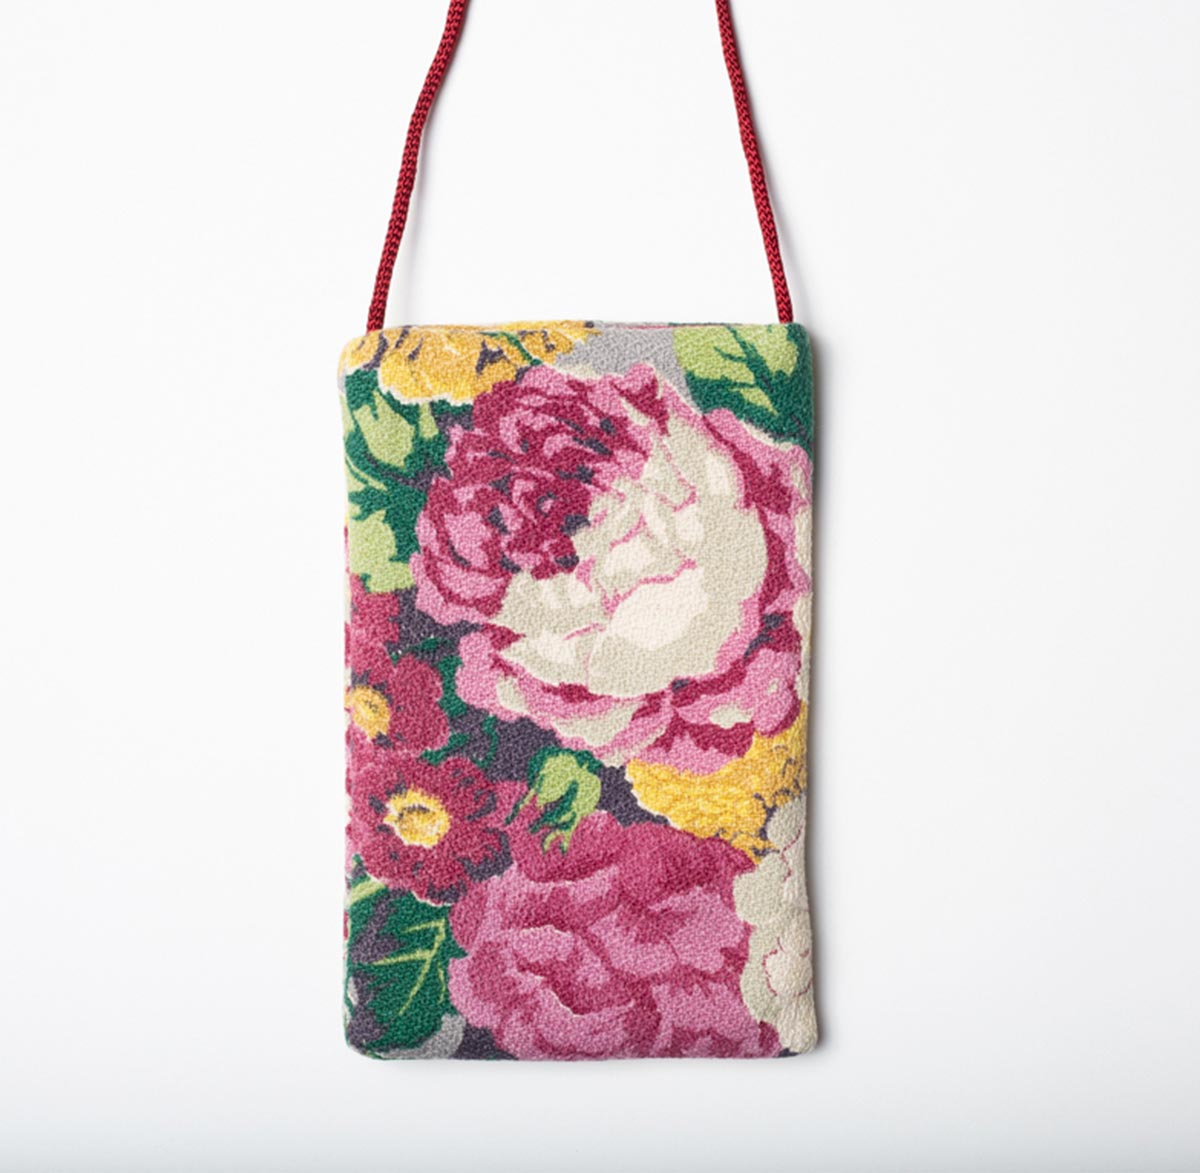 Cellphone Bag Hydrangeas Peonies